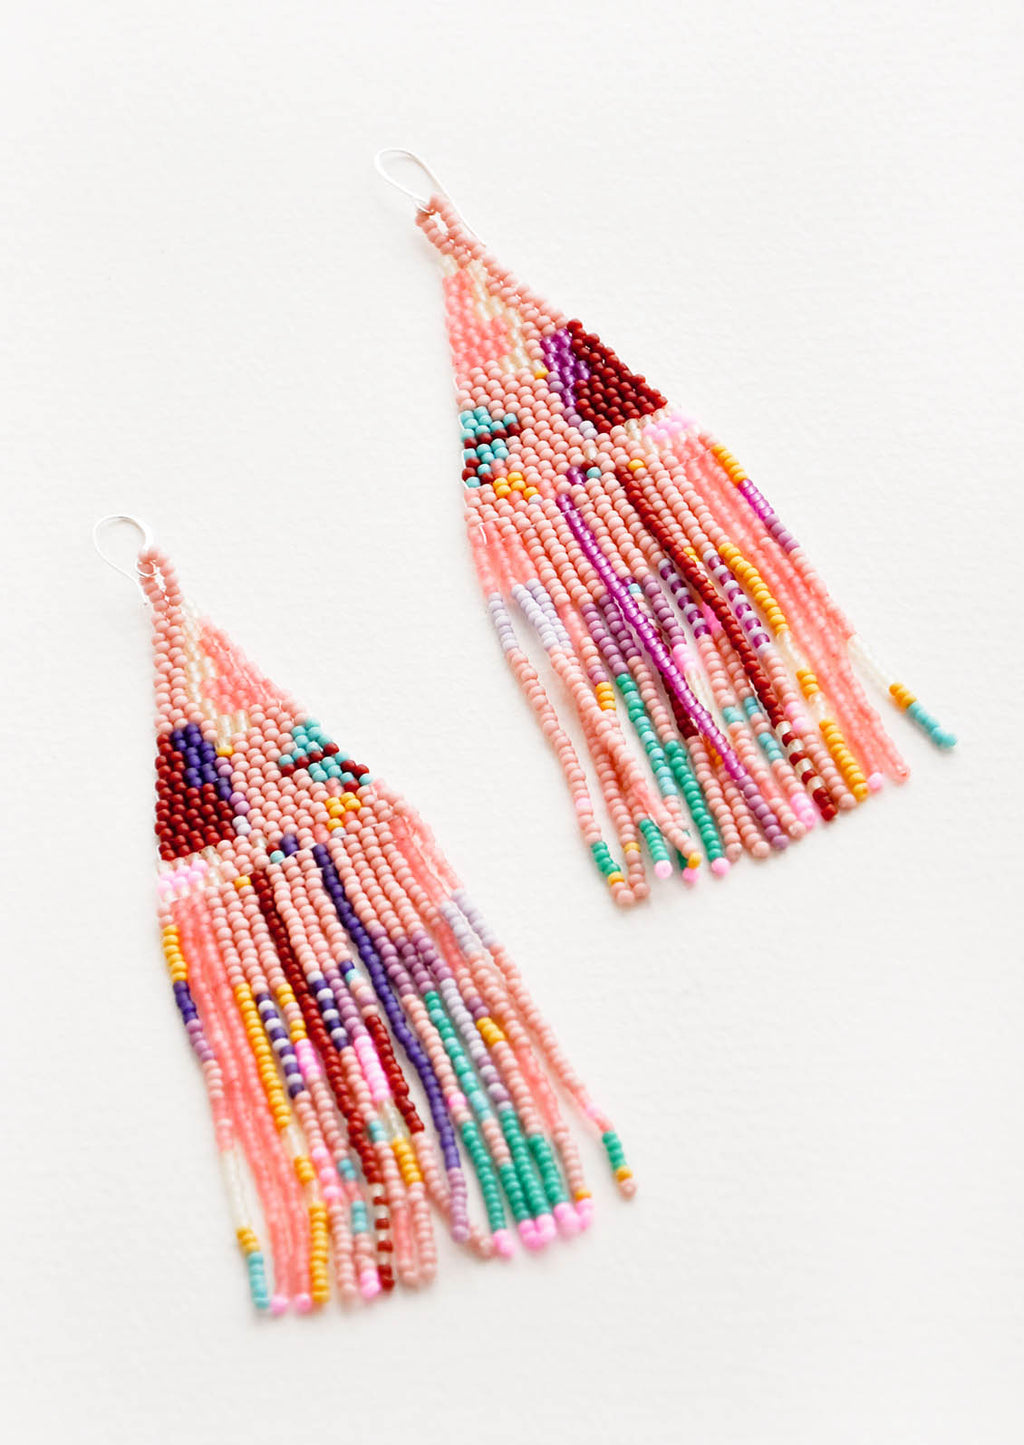 1: Pink fringe beaded earrings with irregular sections of blue, green, purple, maroon, yellow, and orange.